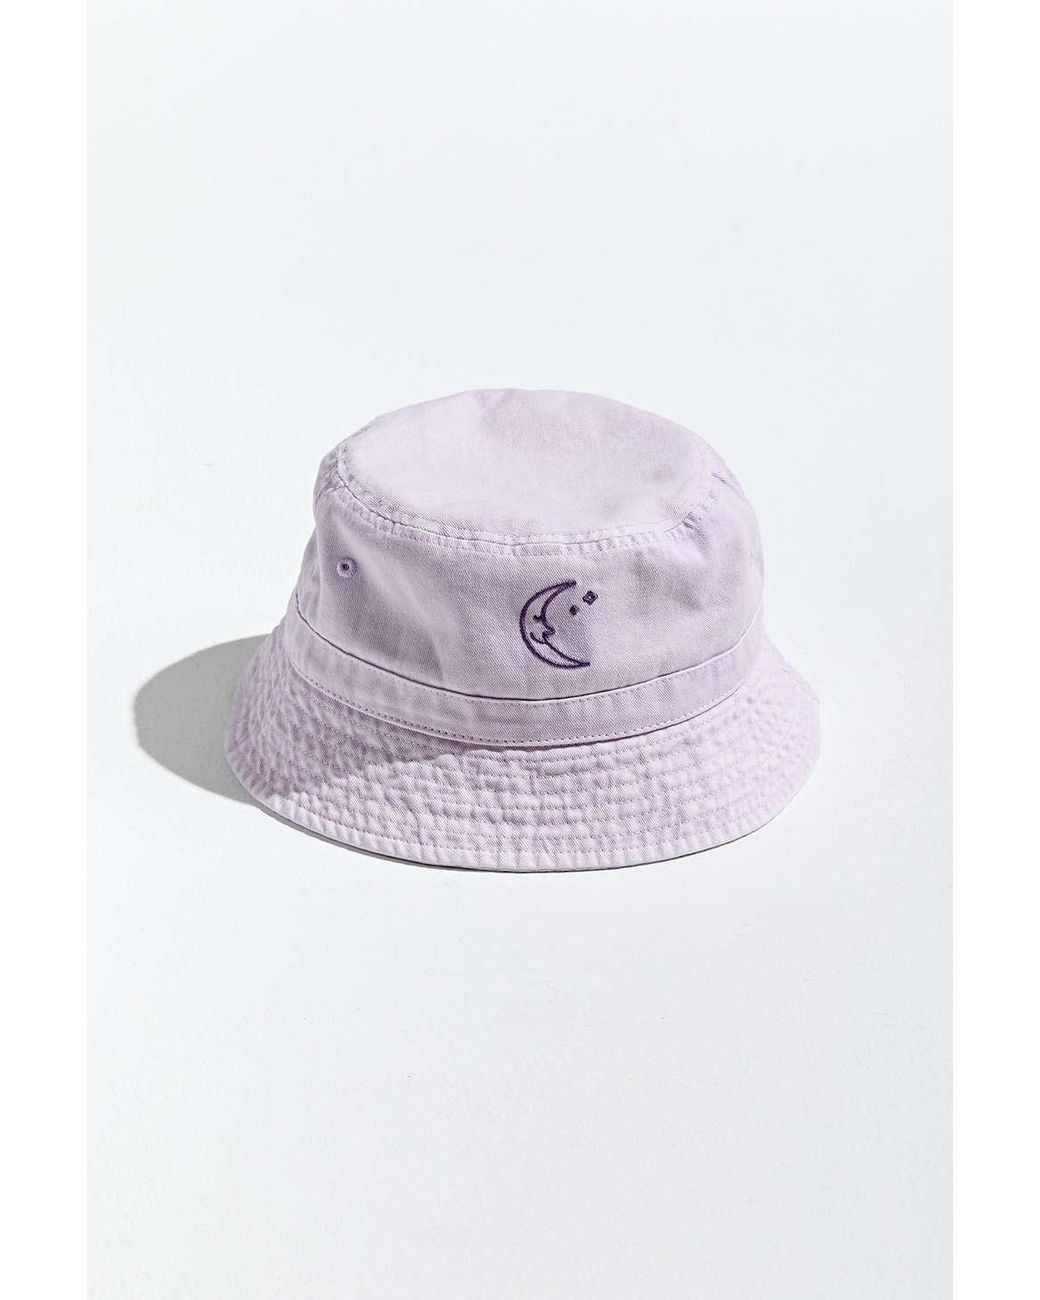 Urban Outfitters Cotton Washed Moon Embroidery Bucket Hat In Lavender Purple For Men Lyst